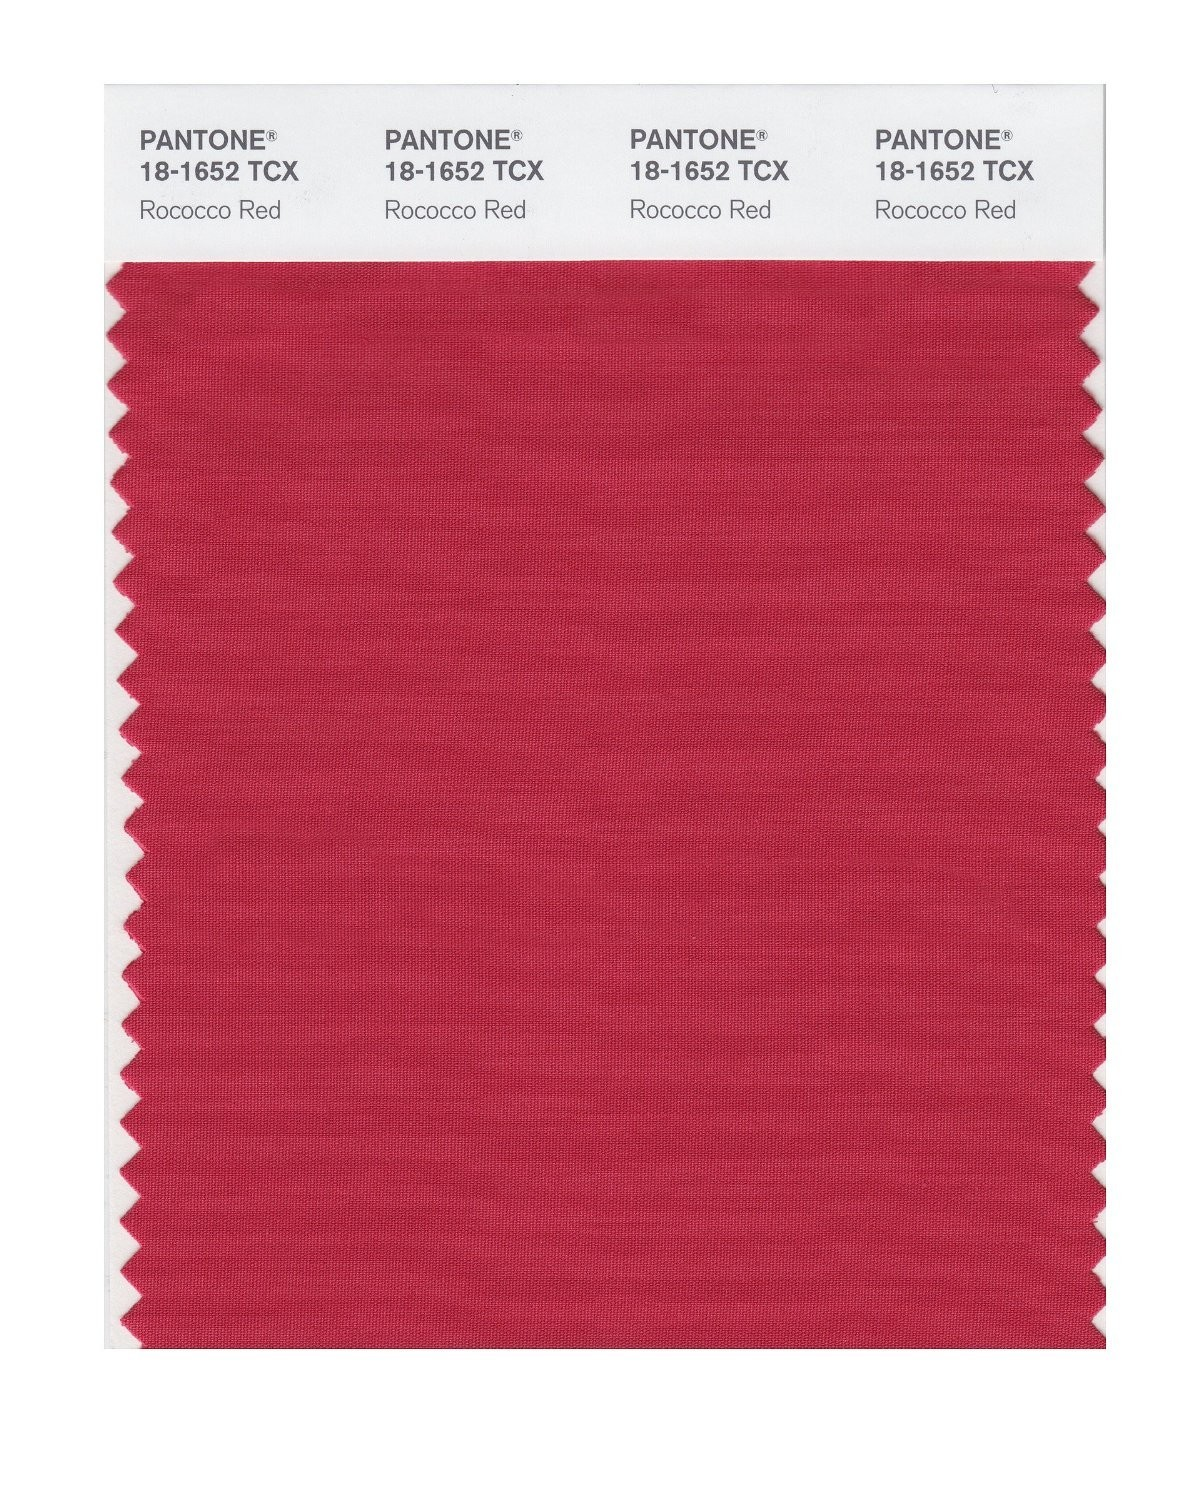 Pantone 18-1652 TCX Swatch Card Rococco Red